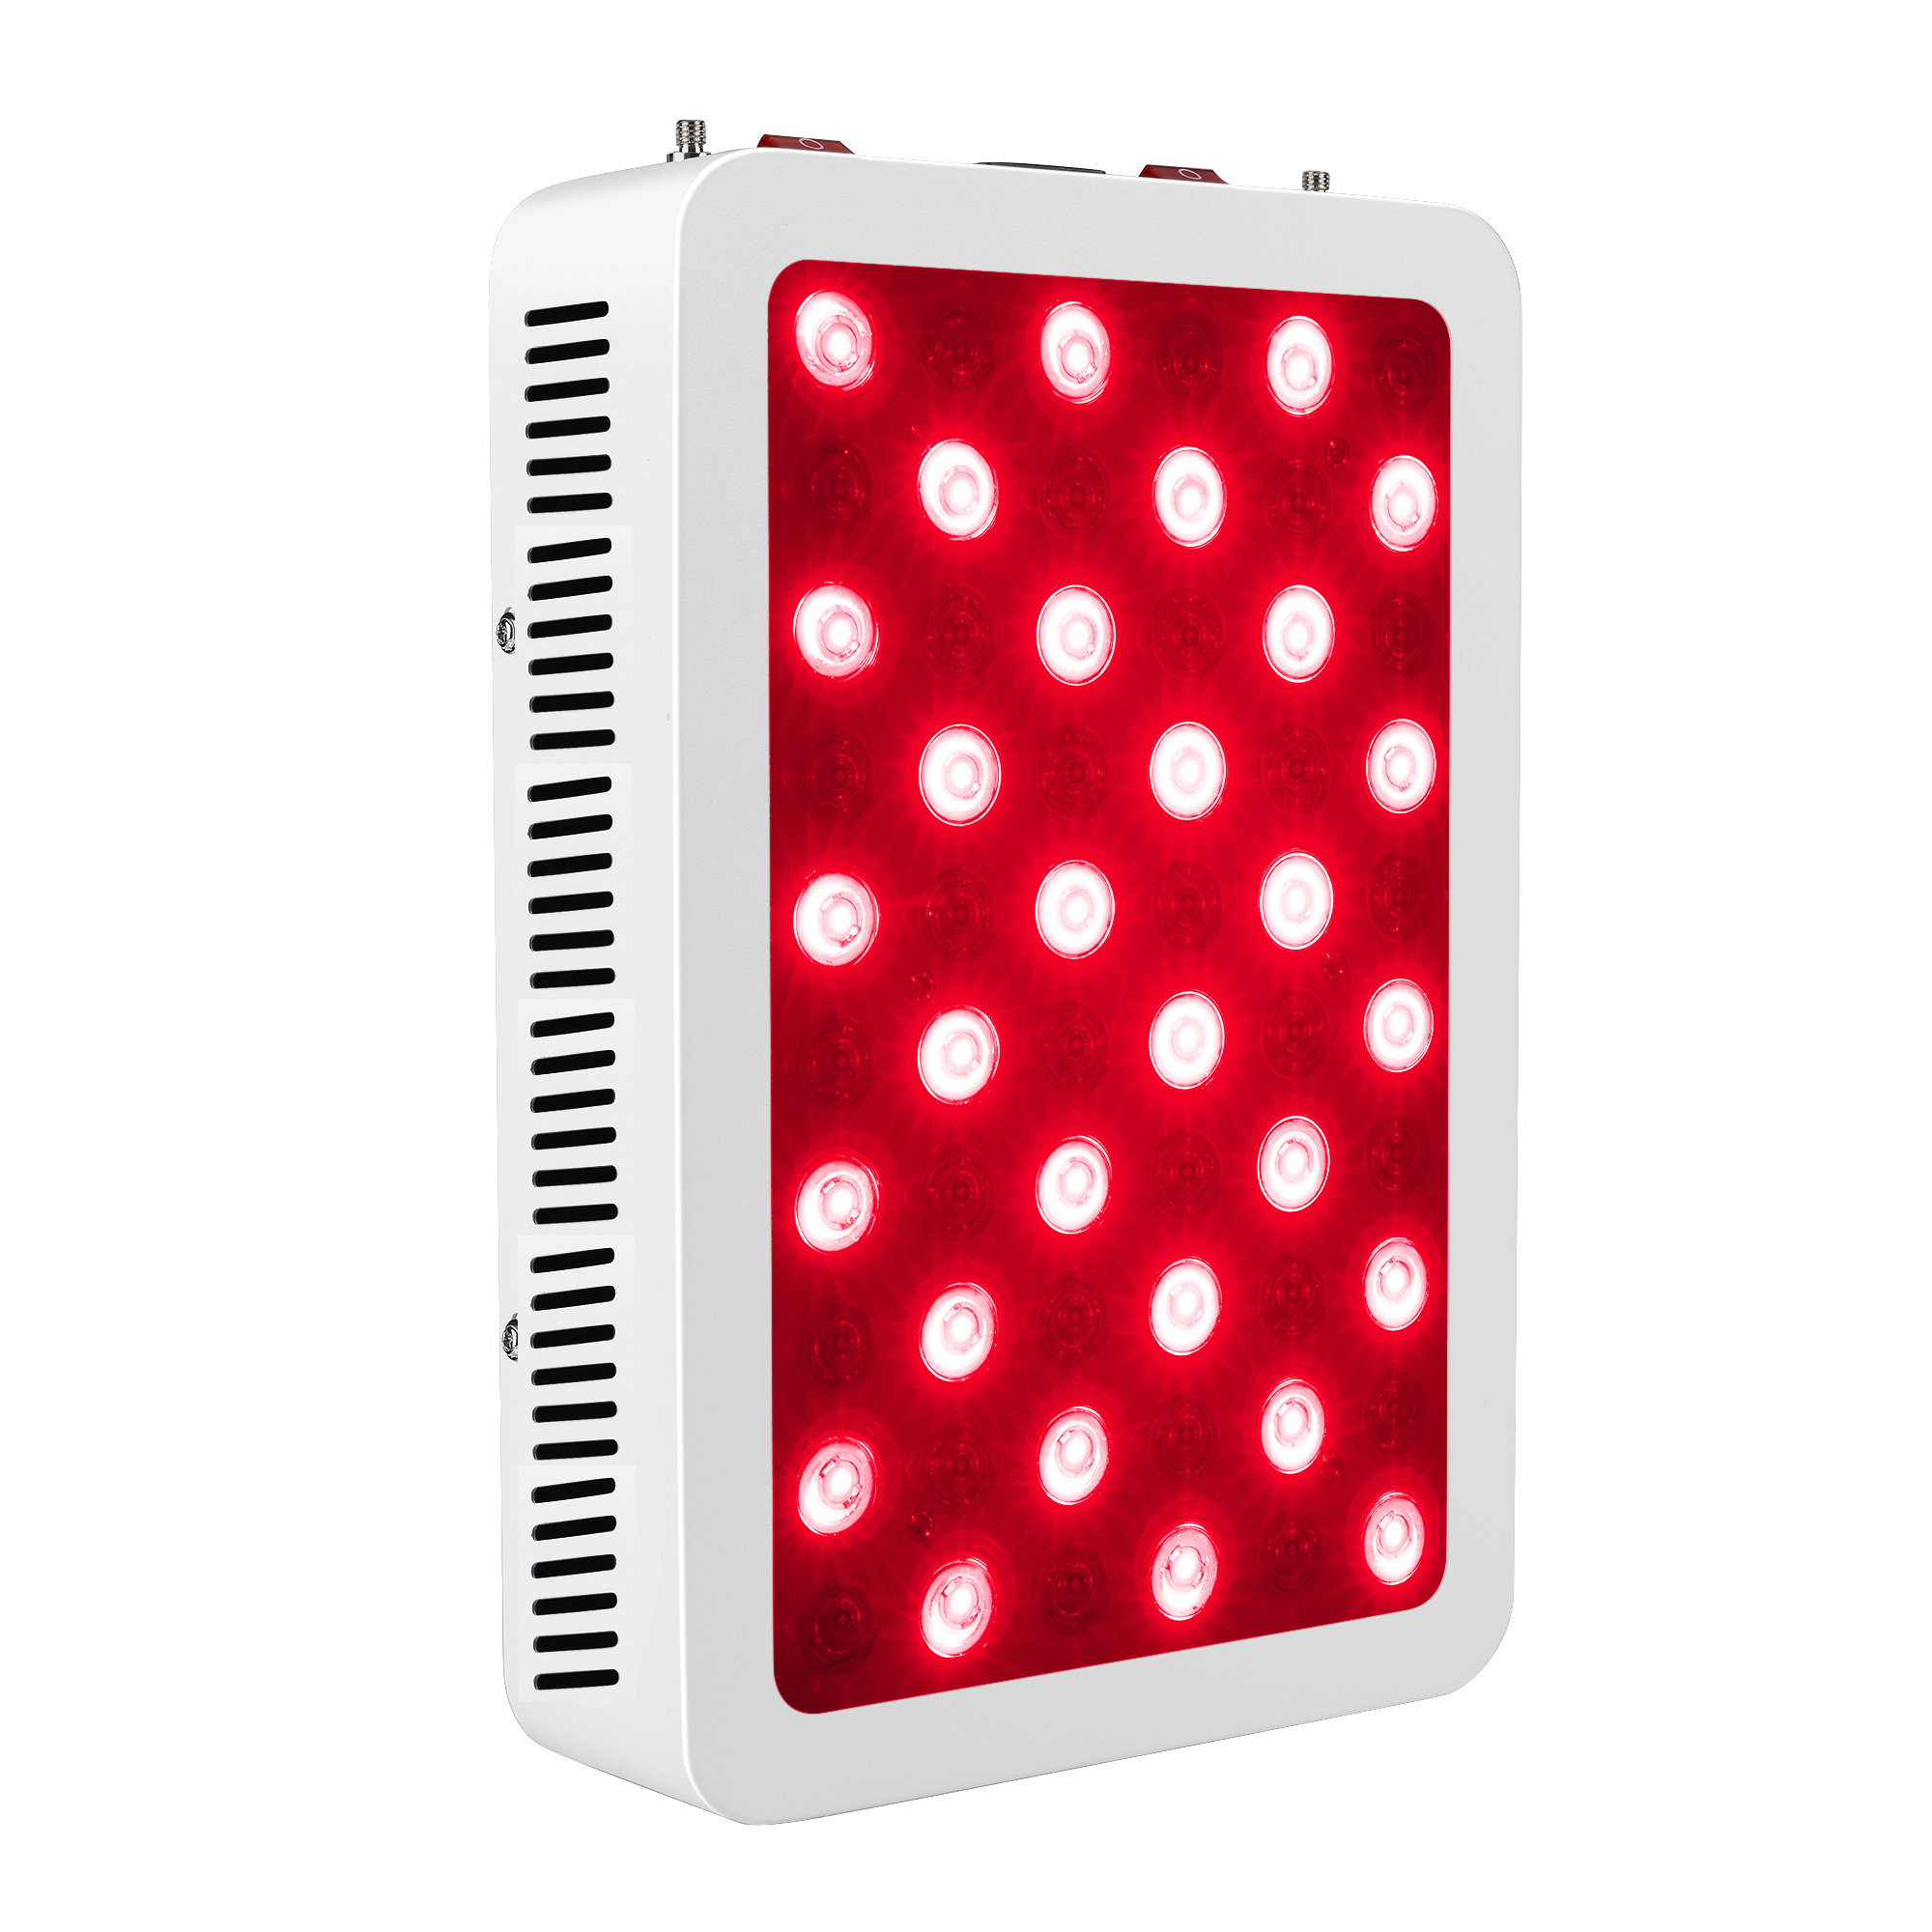 300W Beauty Health Care Light Therapy Machine Red Near Infrared Light Therapy <strong>Device</strong>